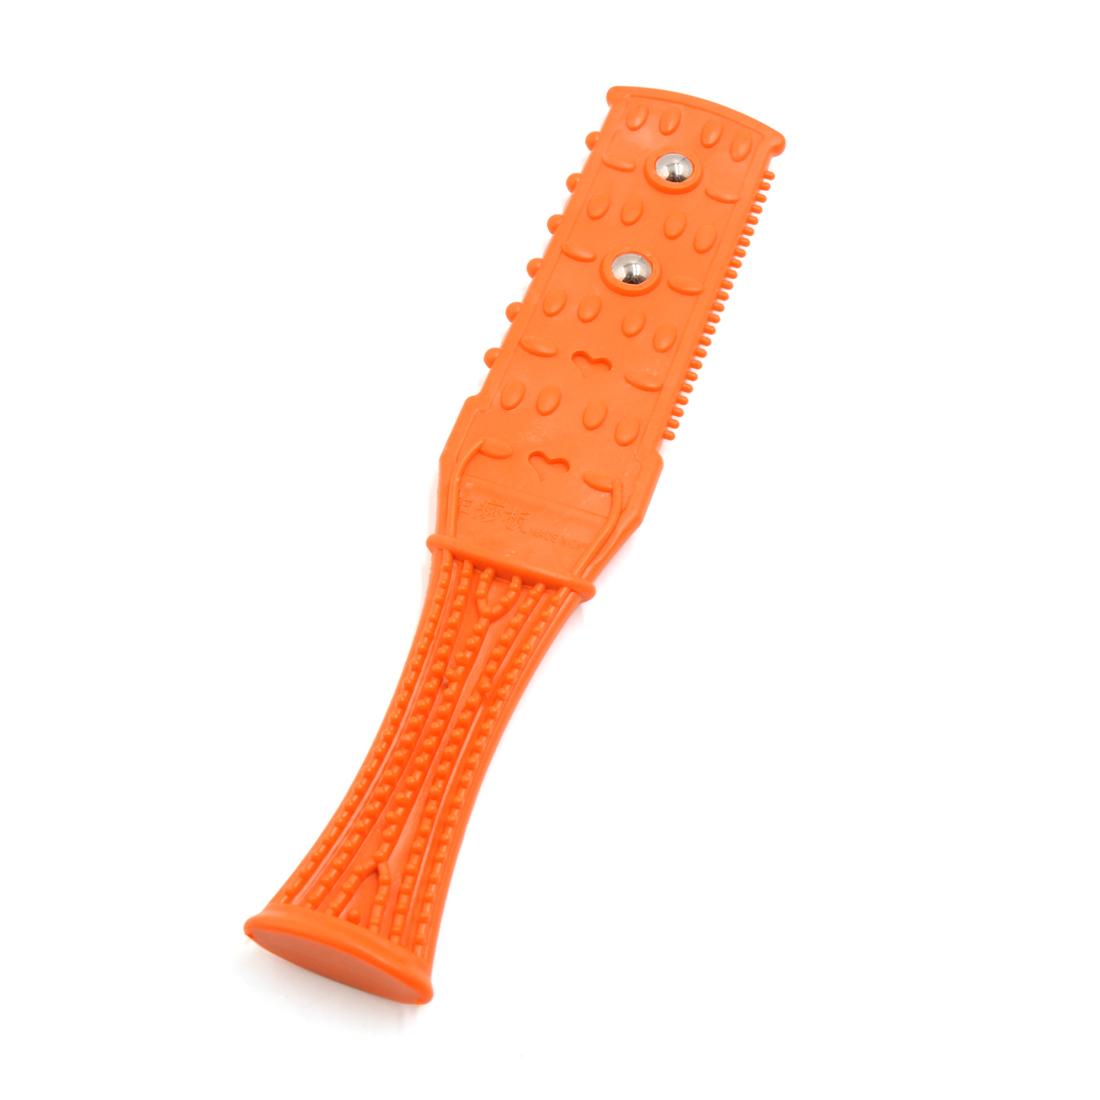 Household Body Neck Arm Back Relaxation Guasha Scraping Board Massage Tool